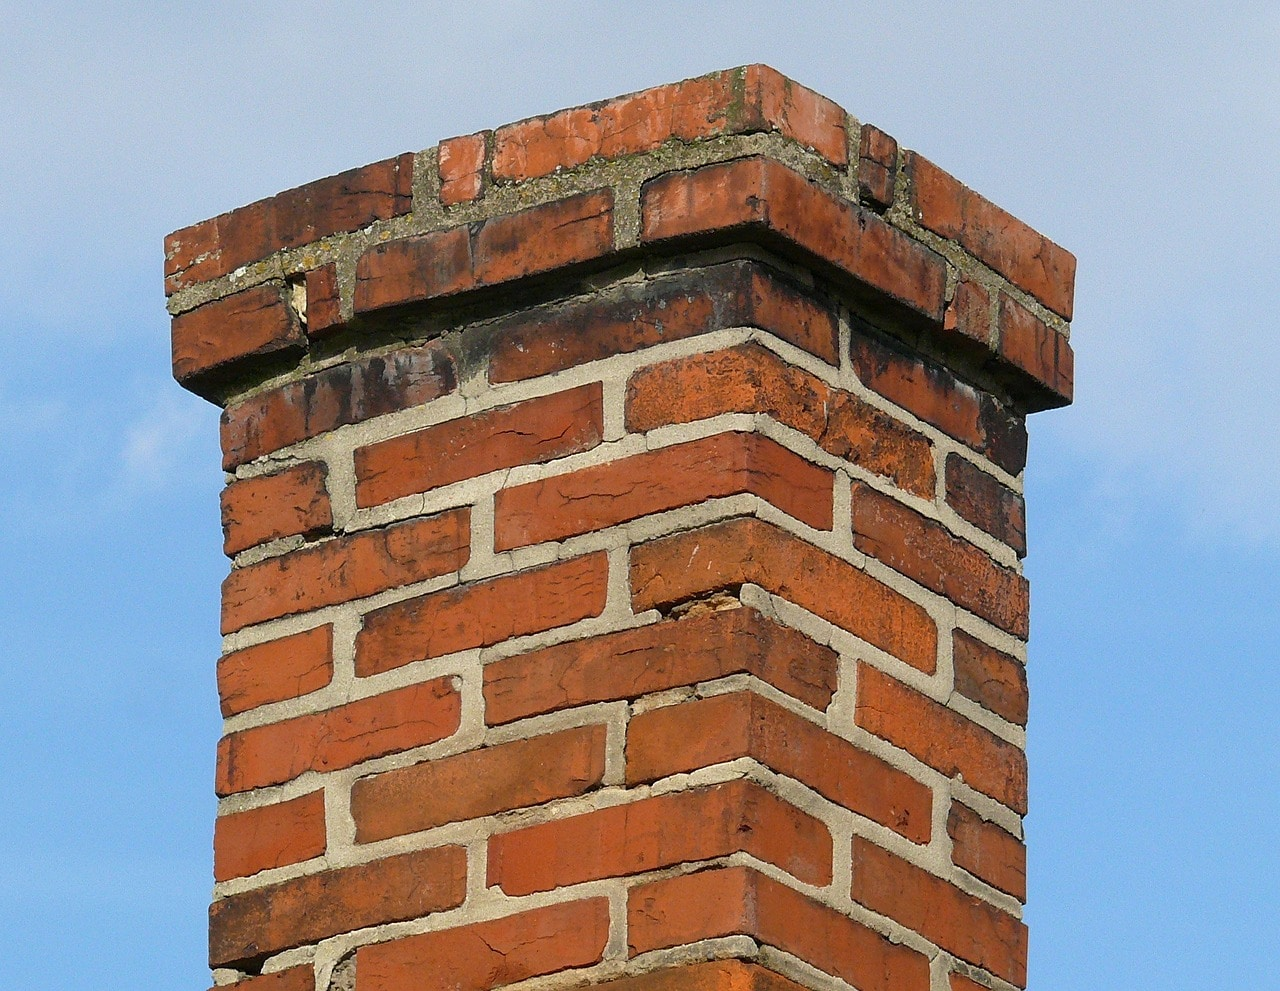 Fireplace Repair Nashville Tn Chimney Repair In Nashville Tn Ground Up Foundation Repair